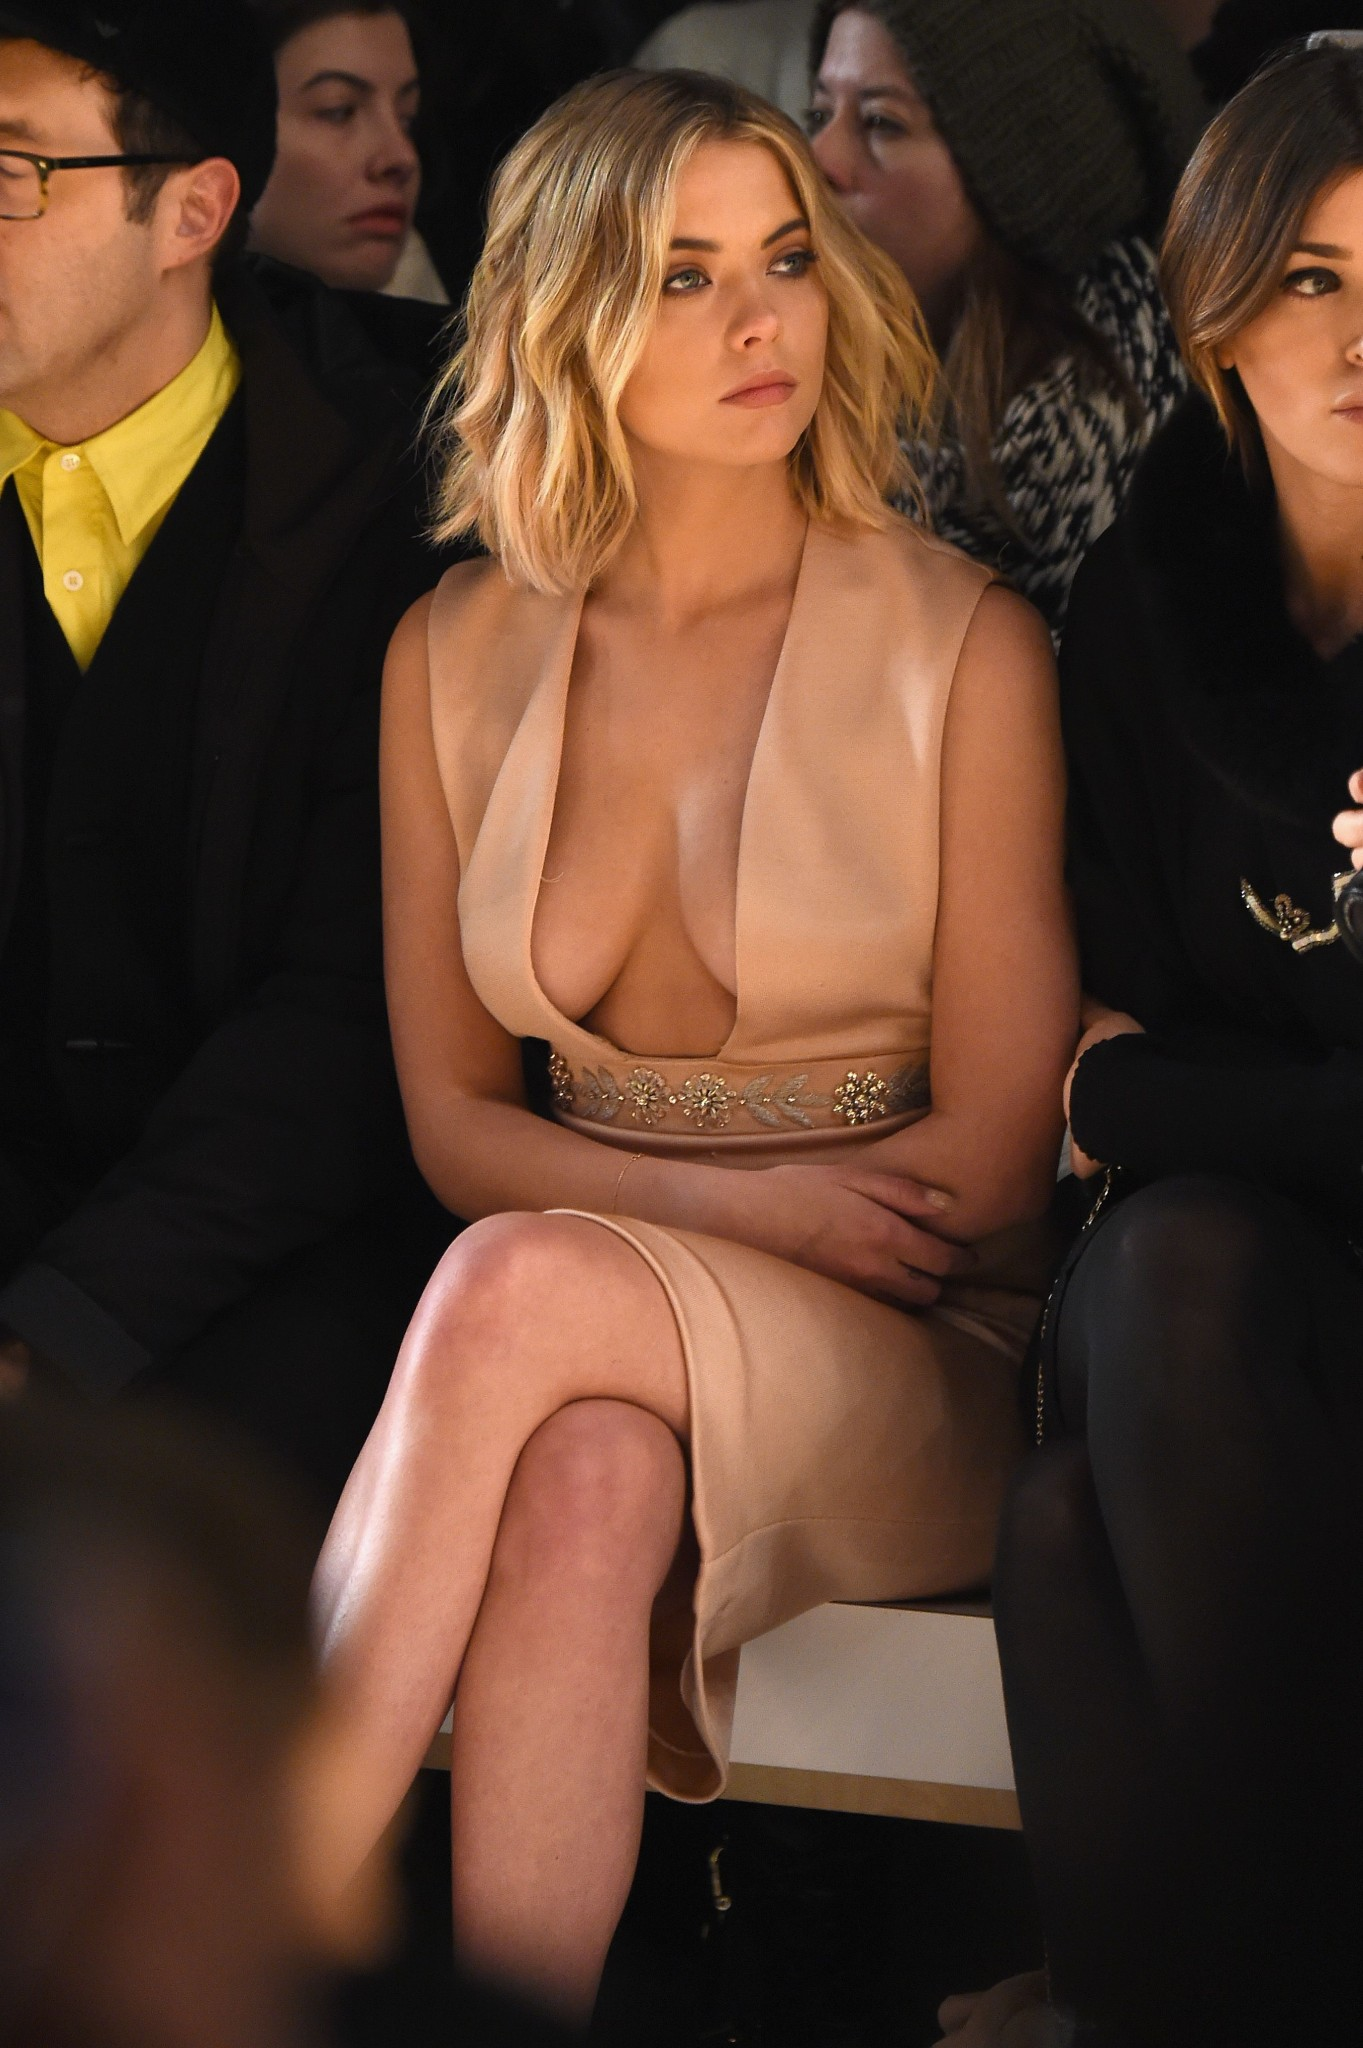 ashley-benson-cleavage-at-a-fashion-show-4